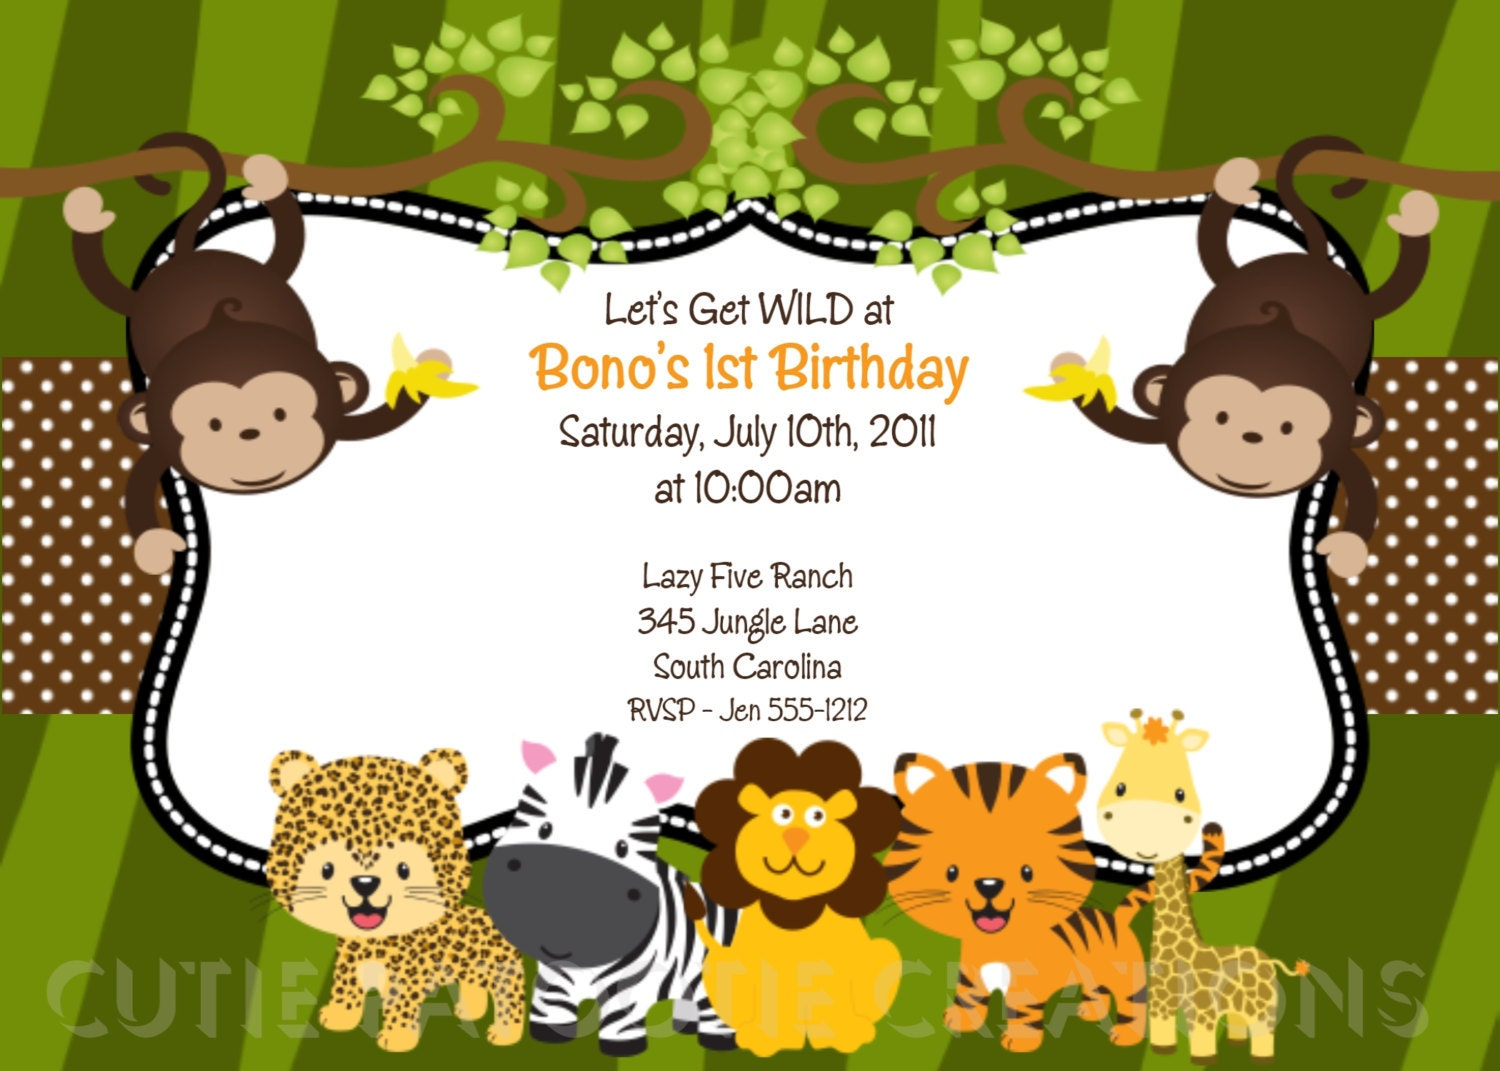 ... | Birthday Party Cake | Birthday Invitations | Birthday Themes